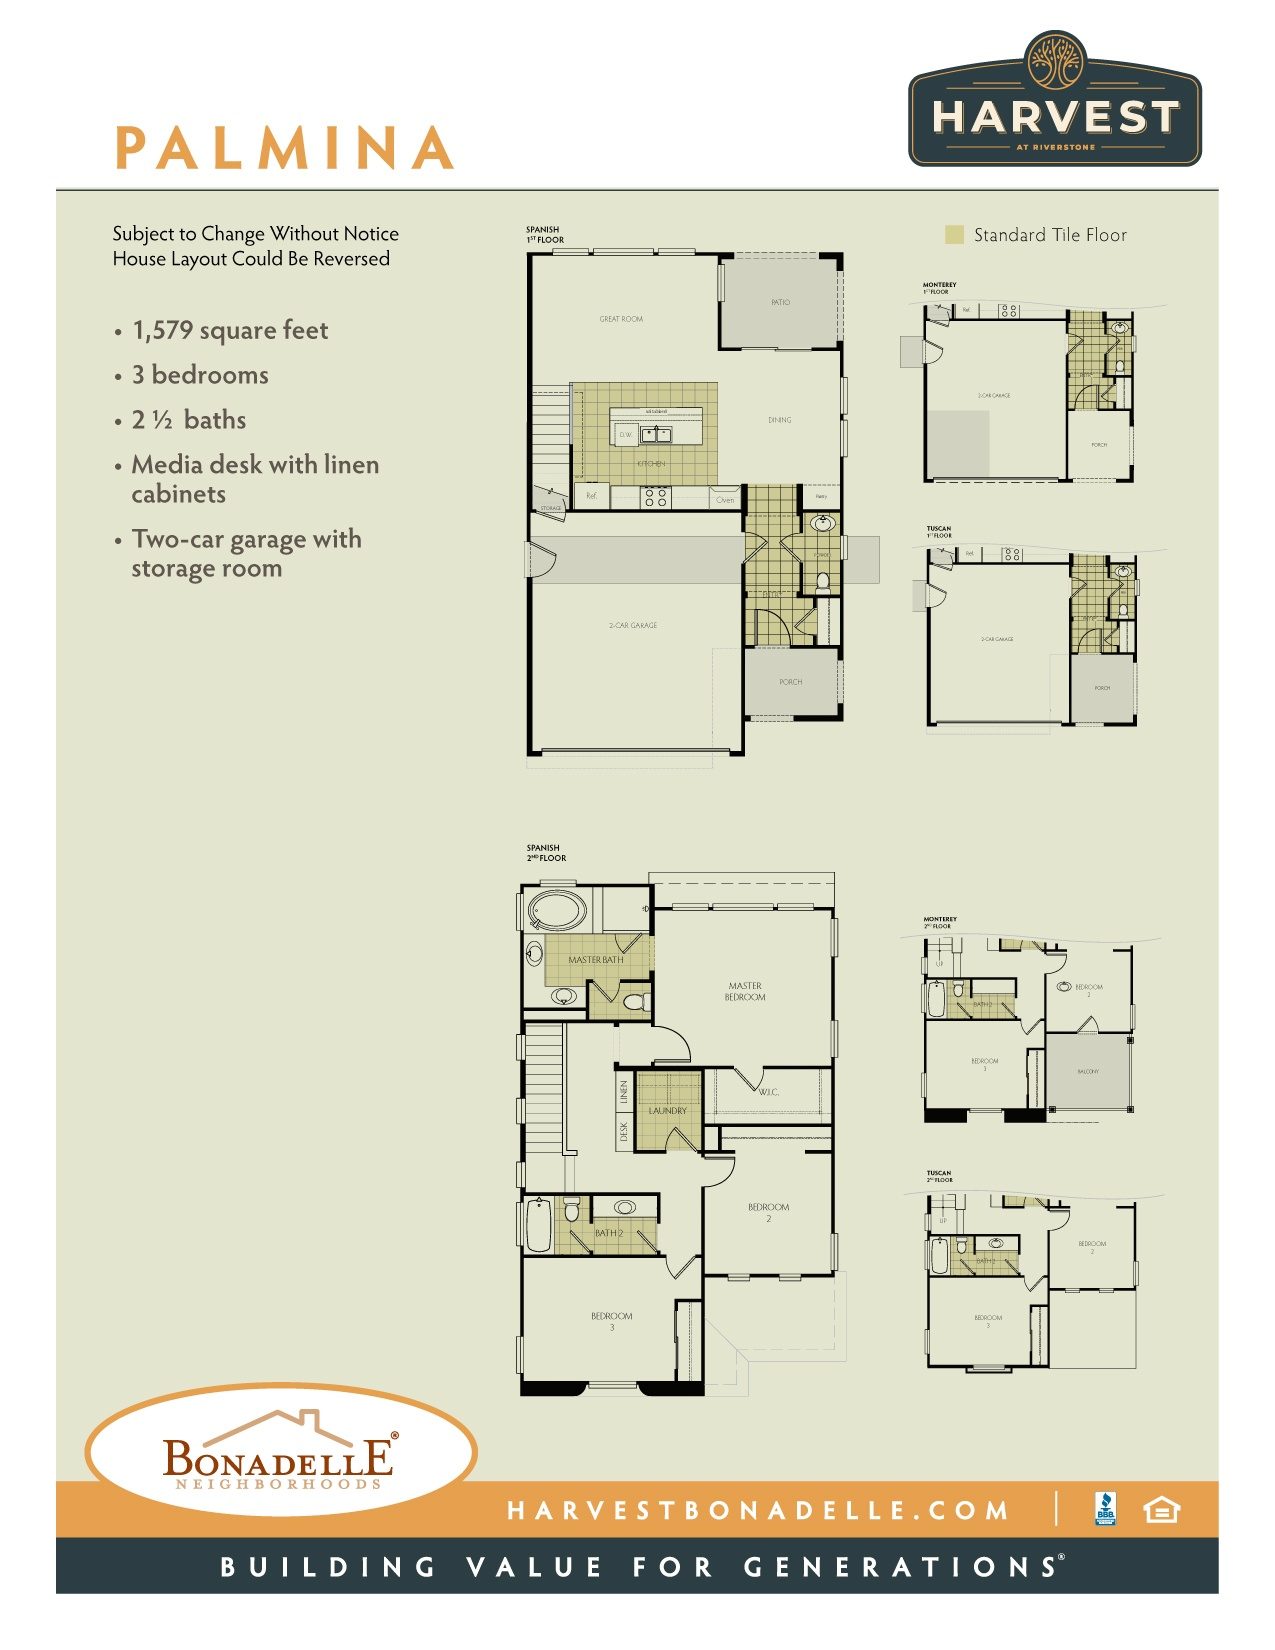 Palmina floor plan